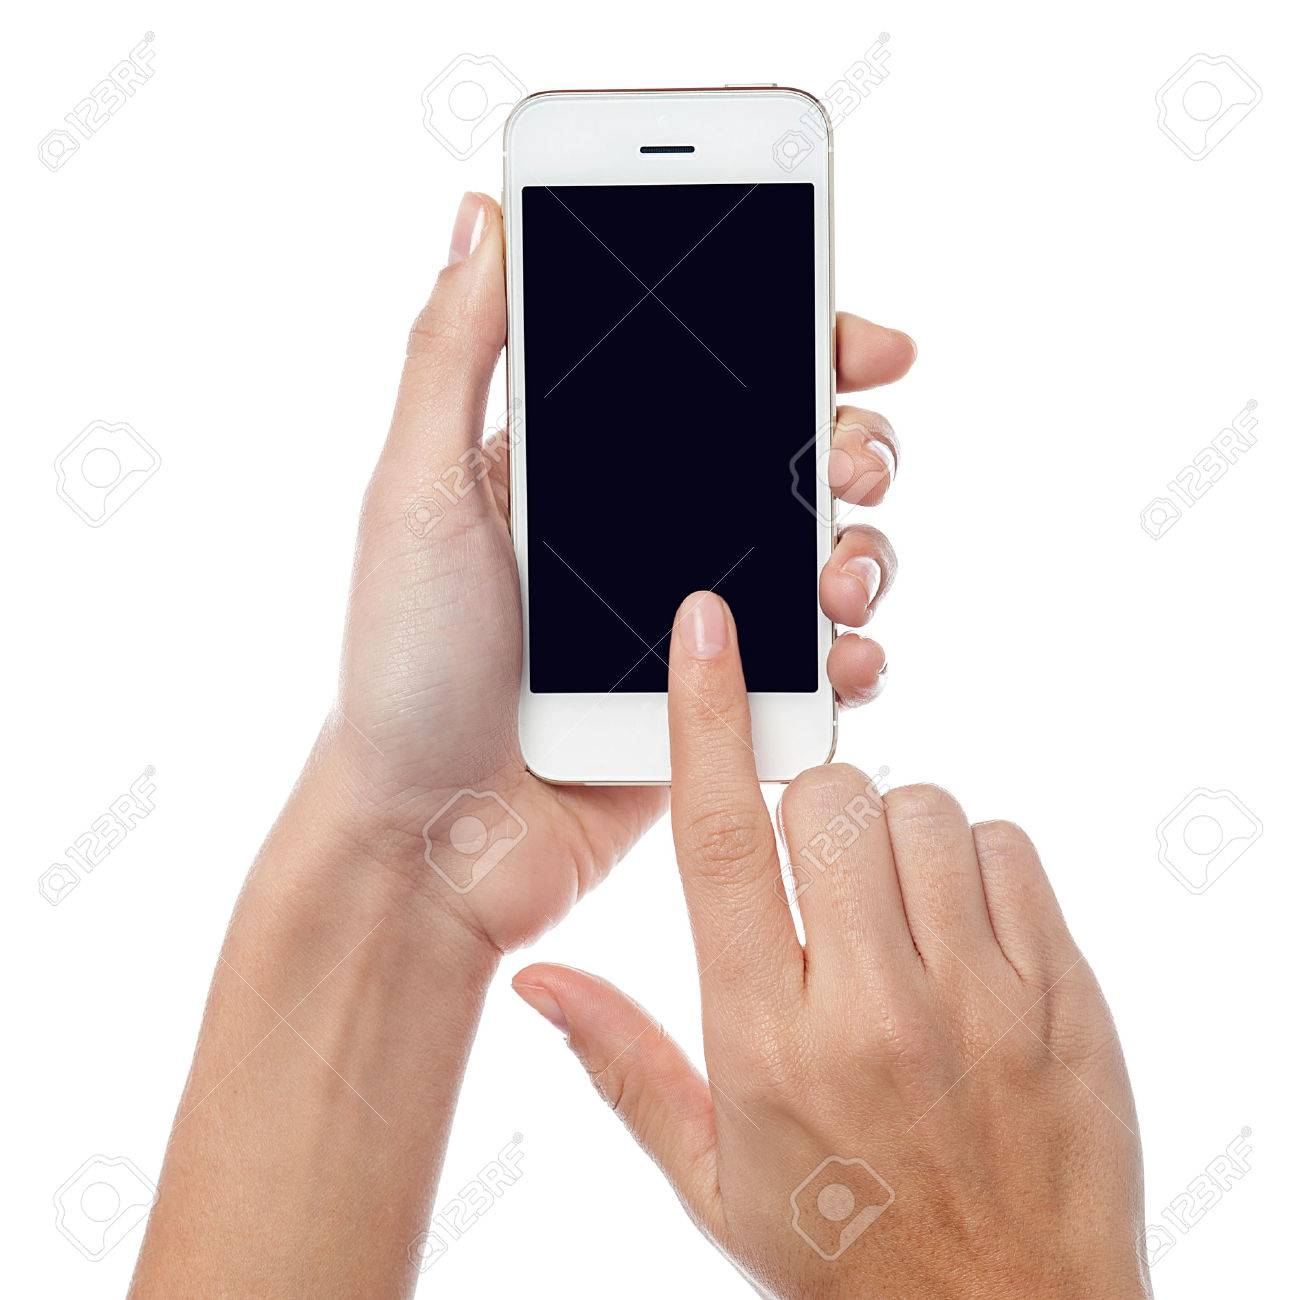 women hodling and operating touch screen phone Stock Photo - 24628444